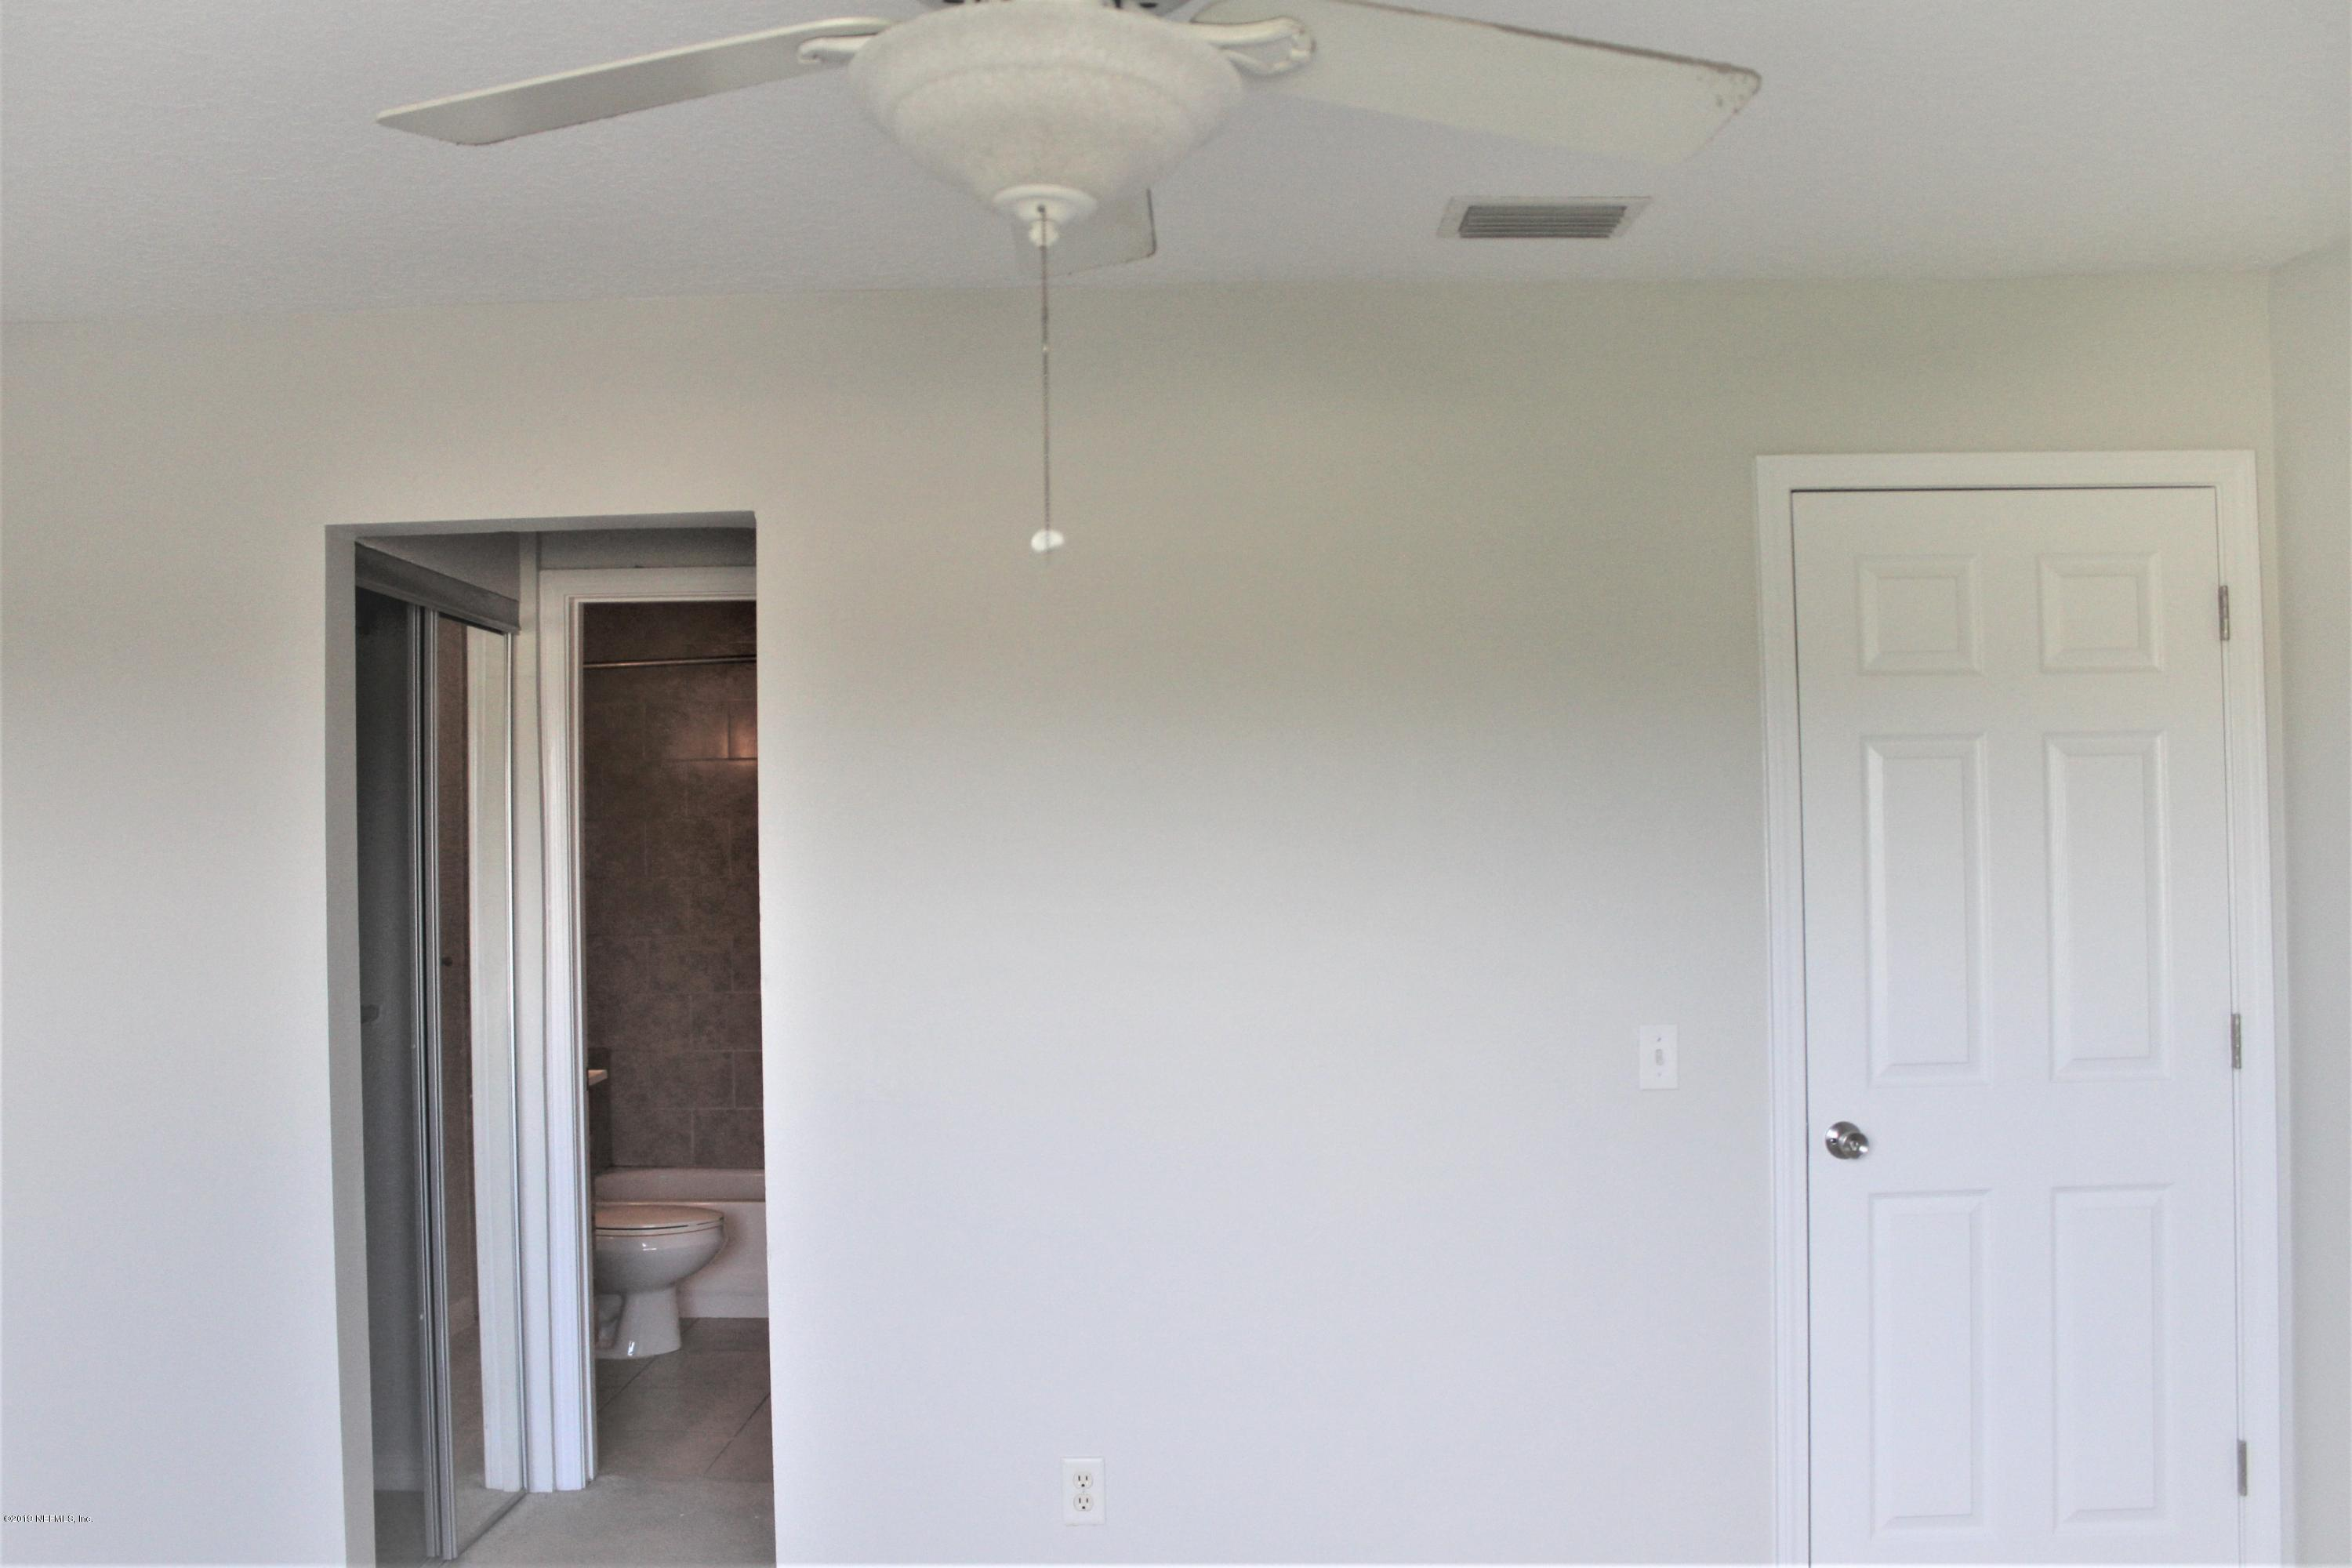 40 CLIPPER, ST AUGUSTINE, FLORIDA 32080, 2 Bedrooms Bedrooms, ,2 BathroomsBathrooms,Condo,For sale,CLIPPER,987930